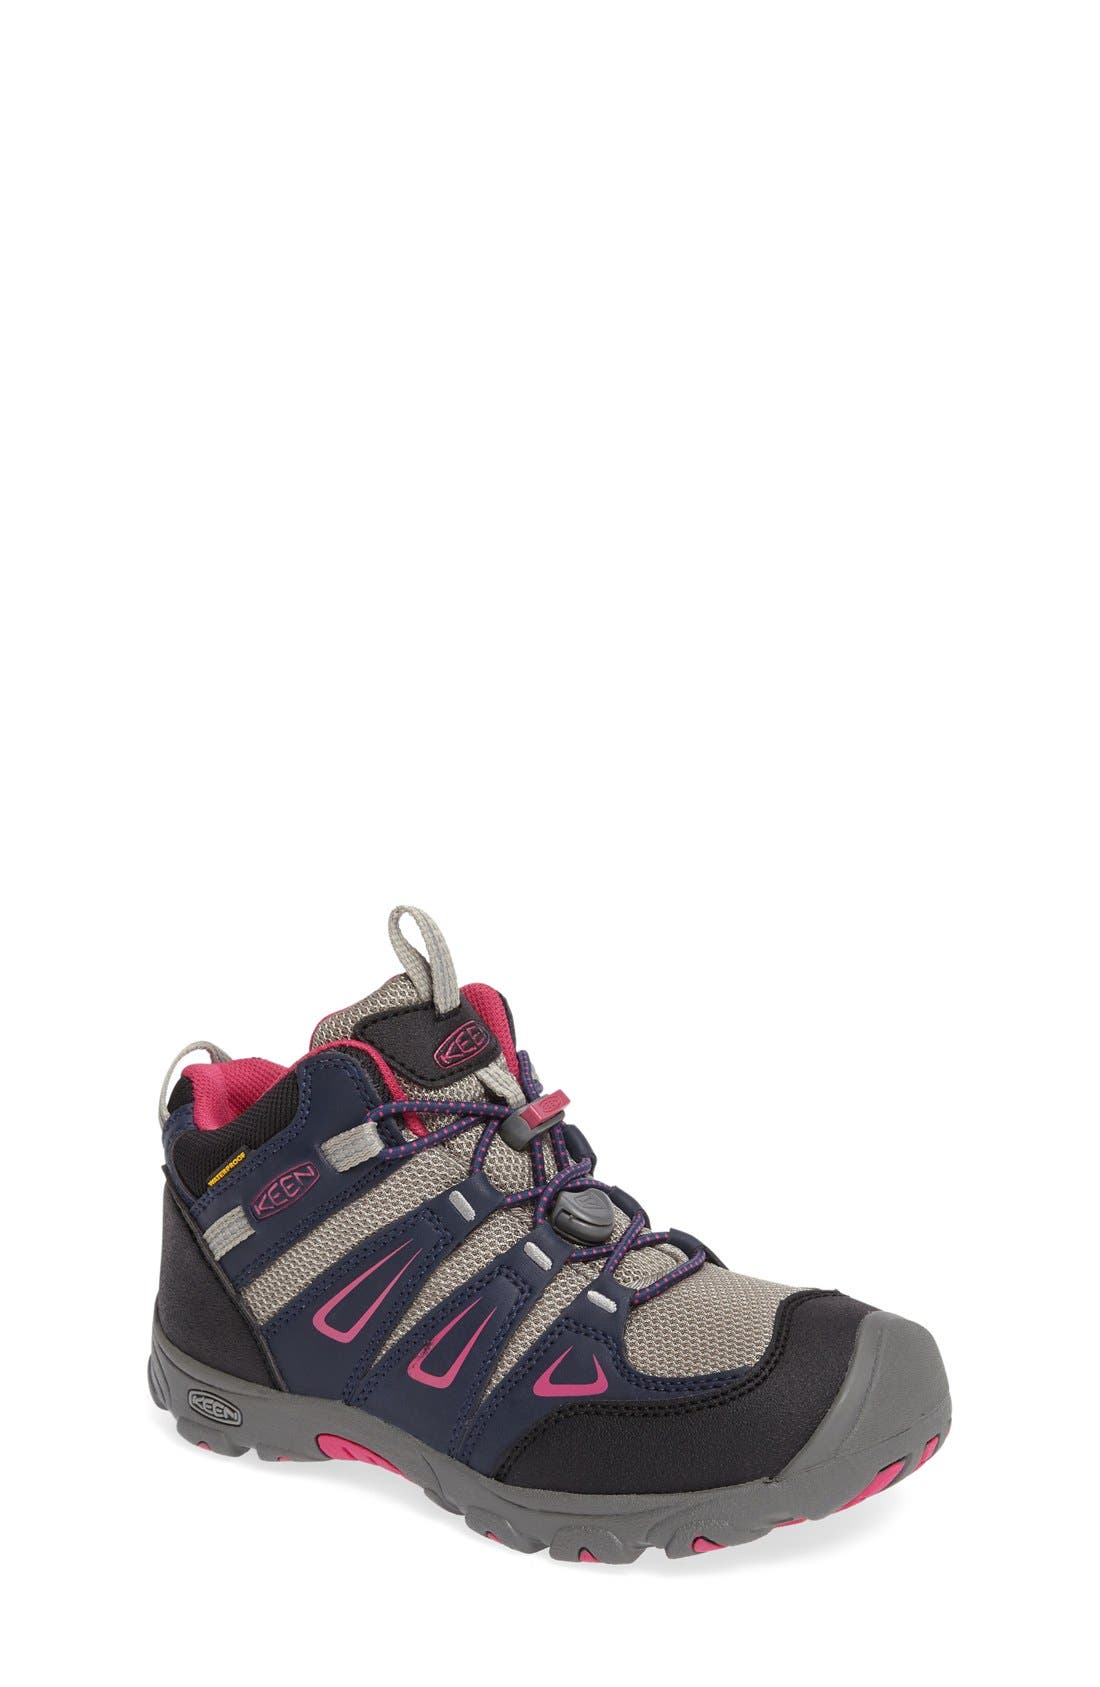 'Oakridge' Waterproof Hiking Boot,                             Main thumbnail 1, color,                             Blue/ Berry